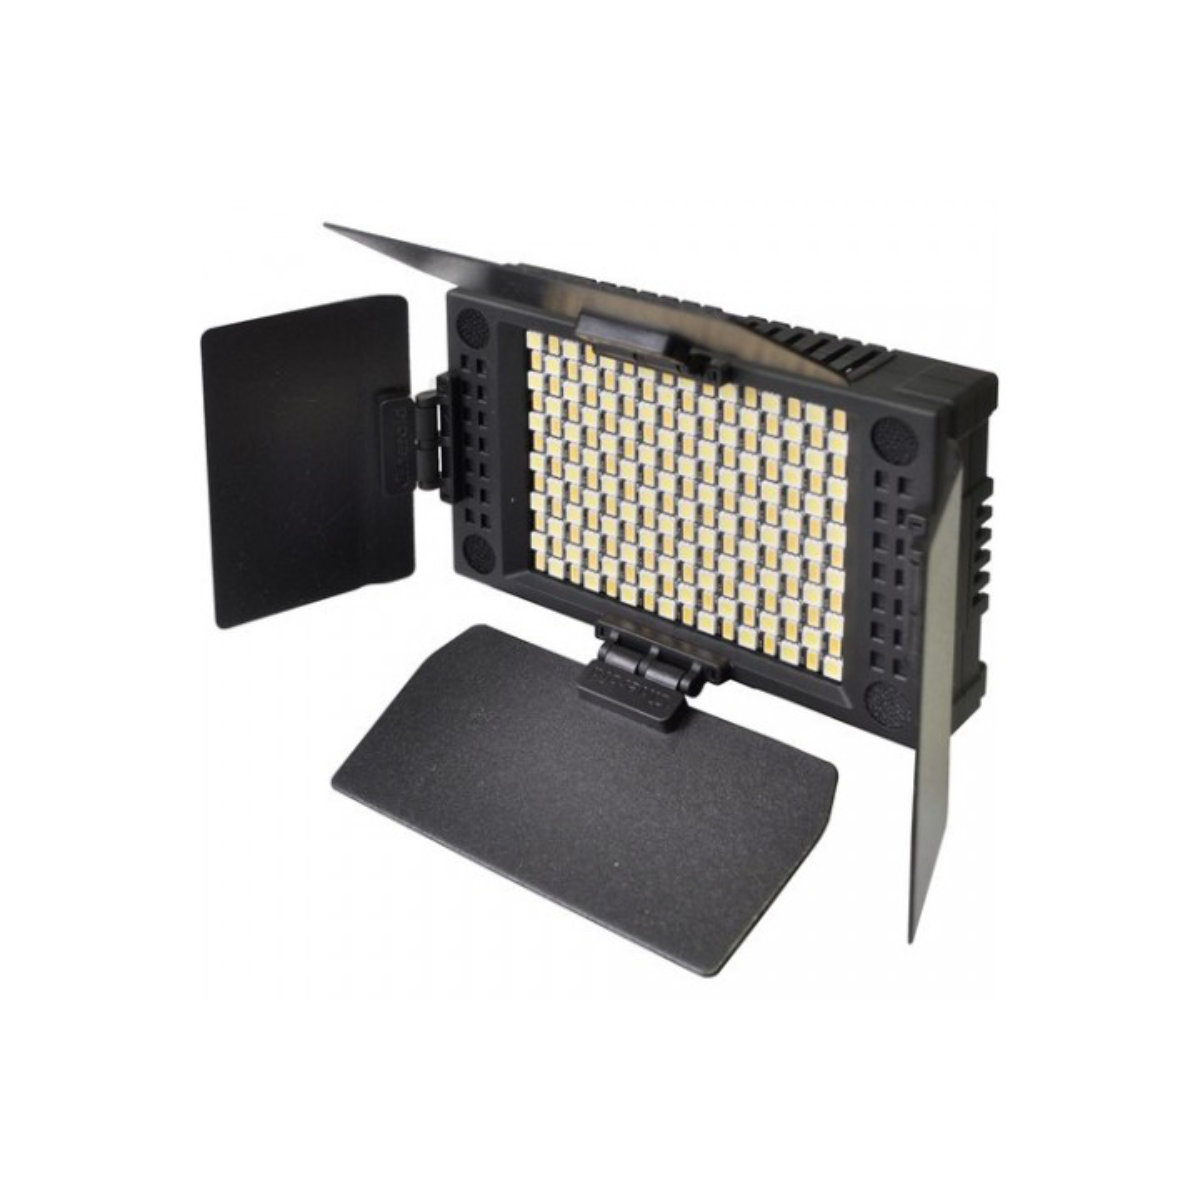 Cineroid Pannello a LED LM200-VC